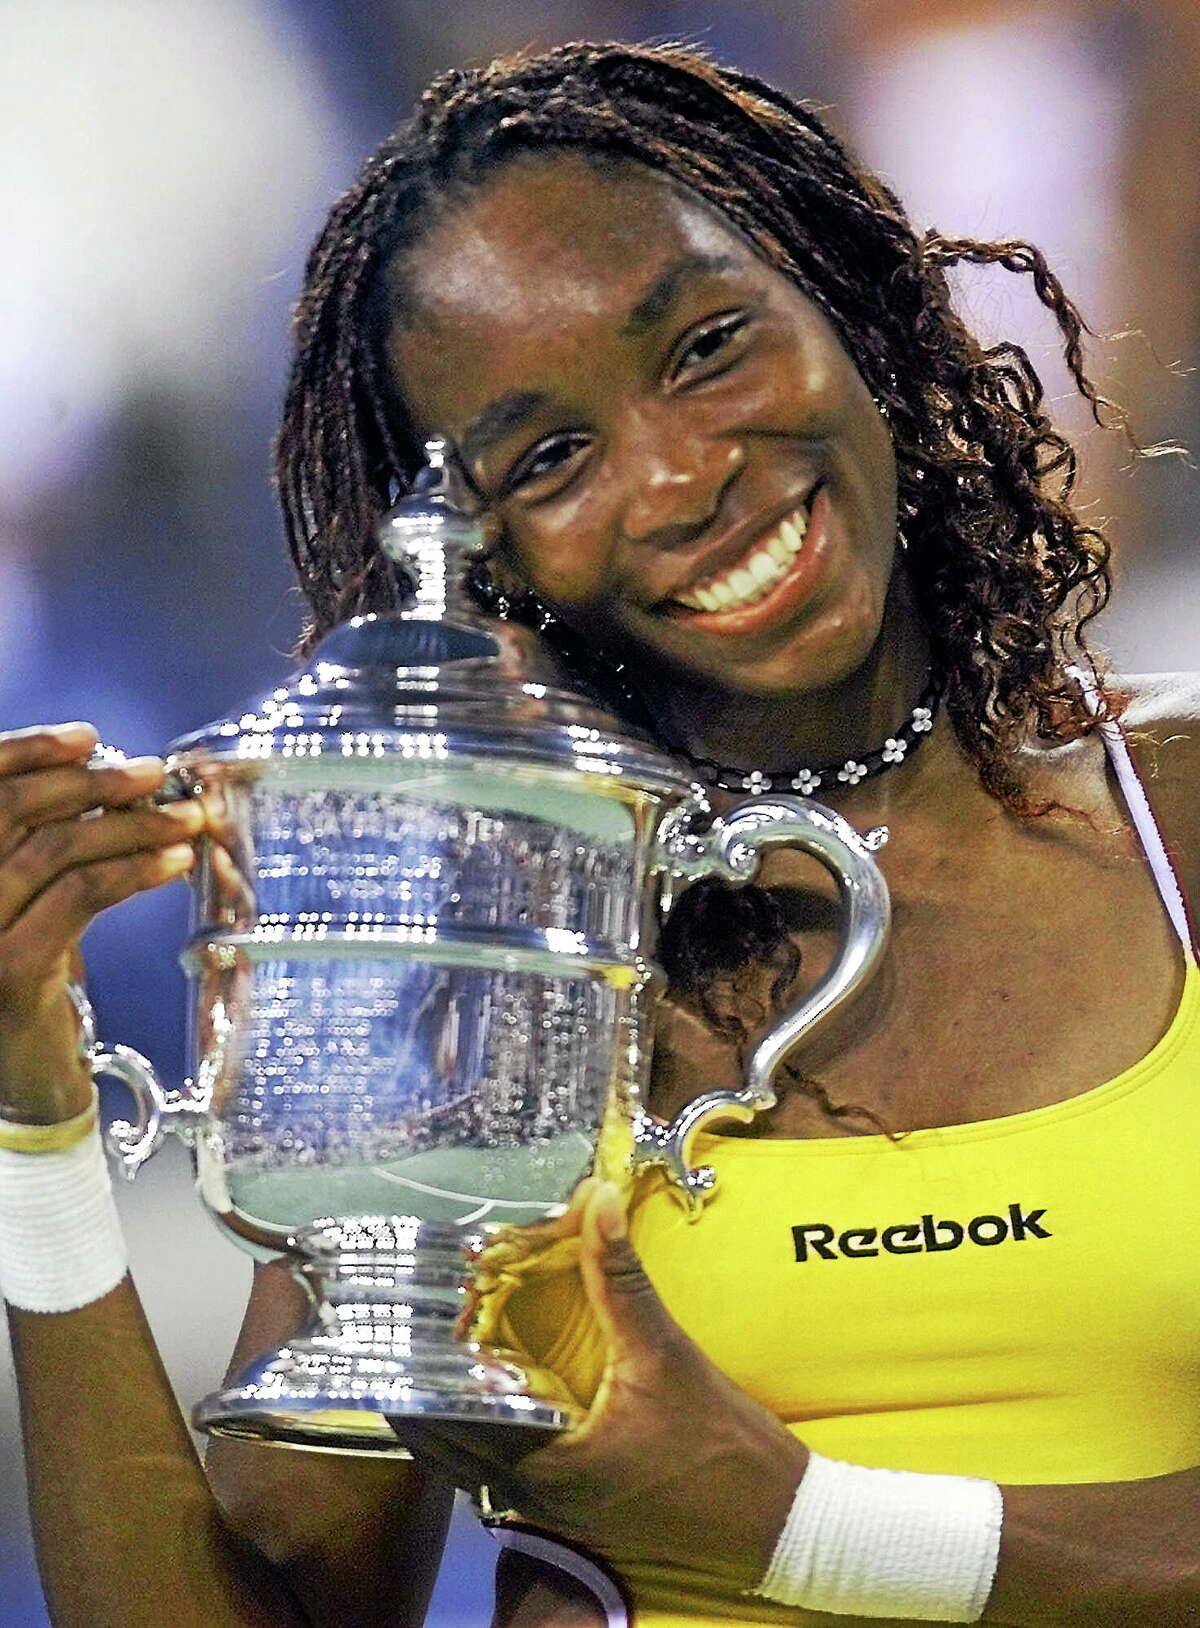 Venus Williams smiles with her trophy after defeating Lindsay Davenport in the U.S. Open final on Sept. 9, 2000, in New York.